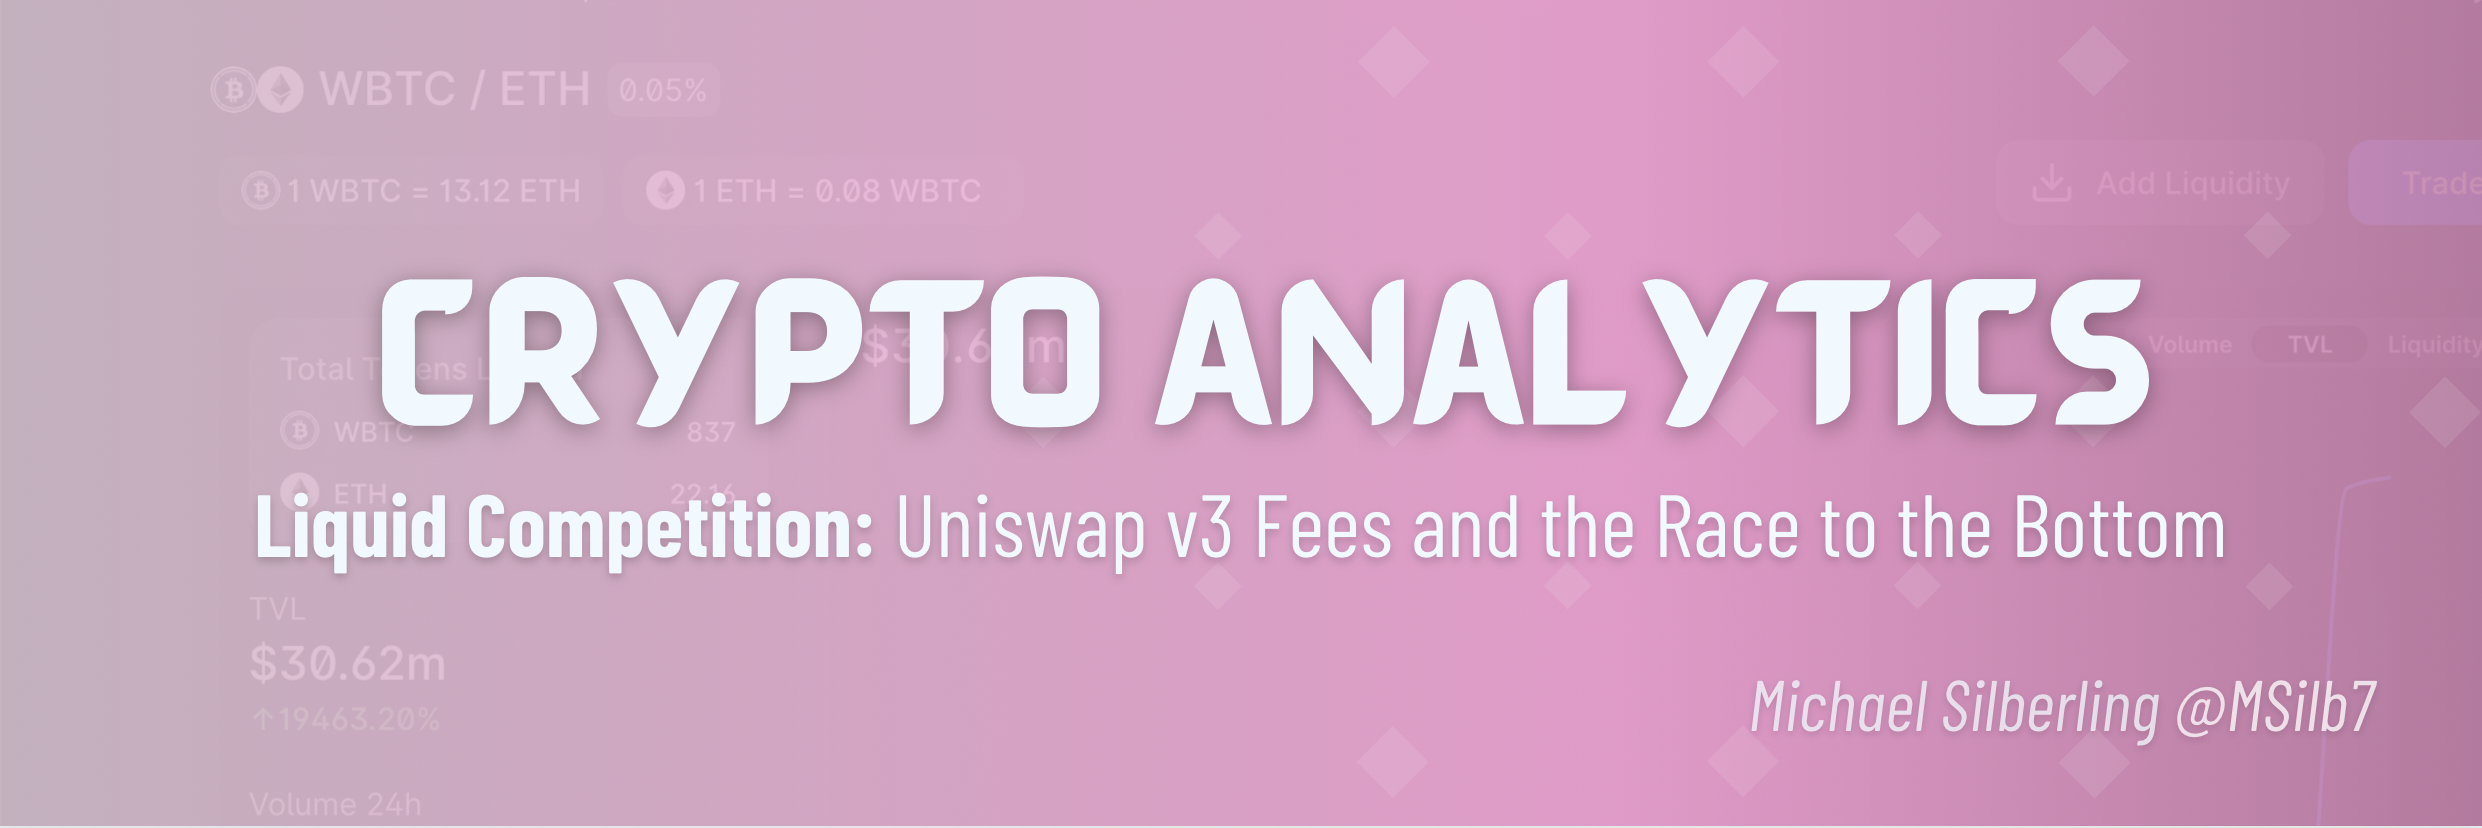 Liquid Competition: Uniswap v3 Fees and the Race to the Bottom